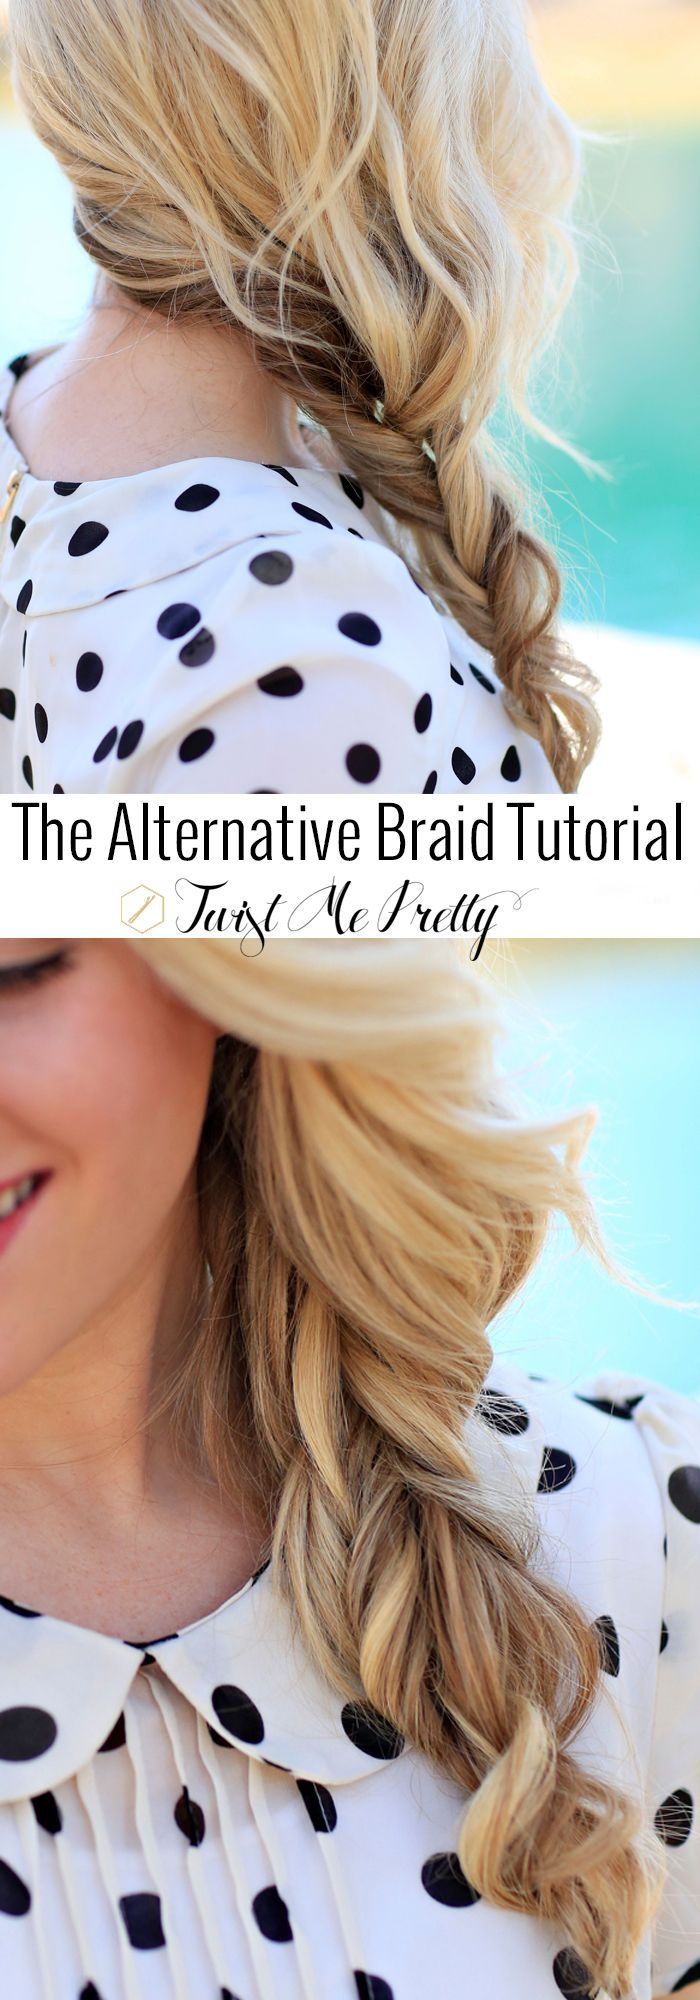 Learning this braid for summer is a must! It holds shorter layers and looks so gorgeous when fluffed out. Checkout the tutorial at Twist Me Pretty